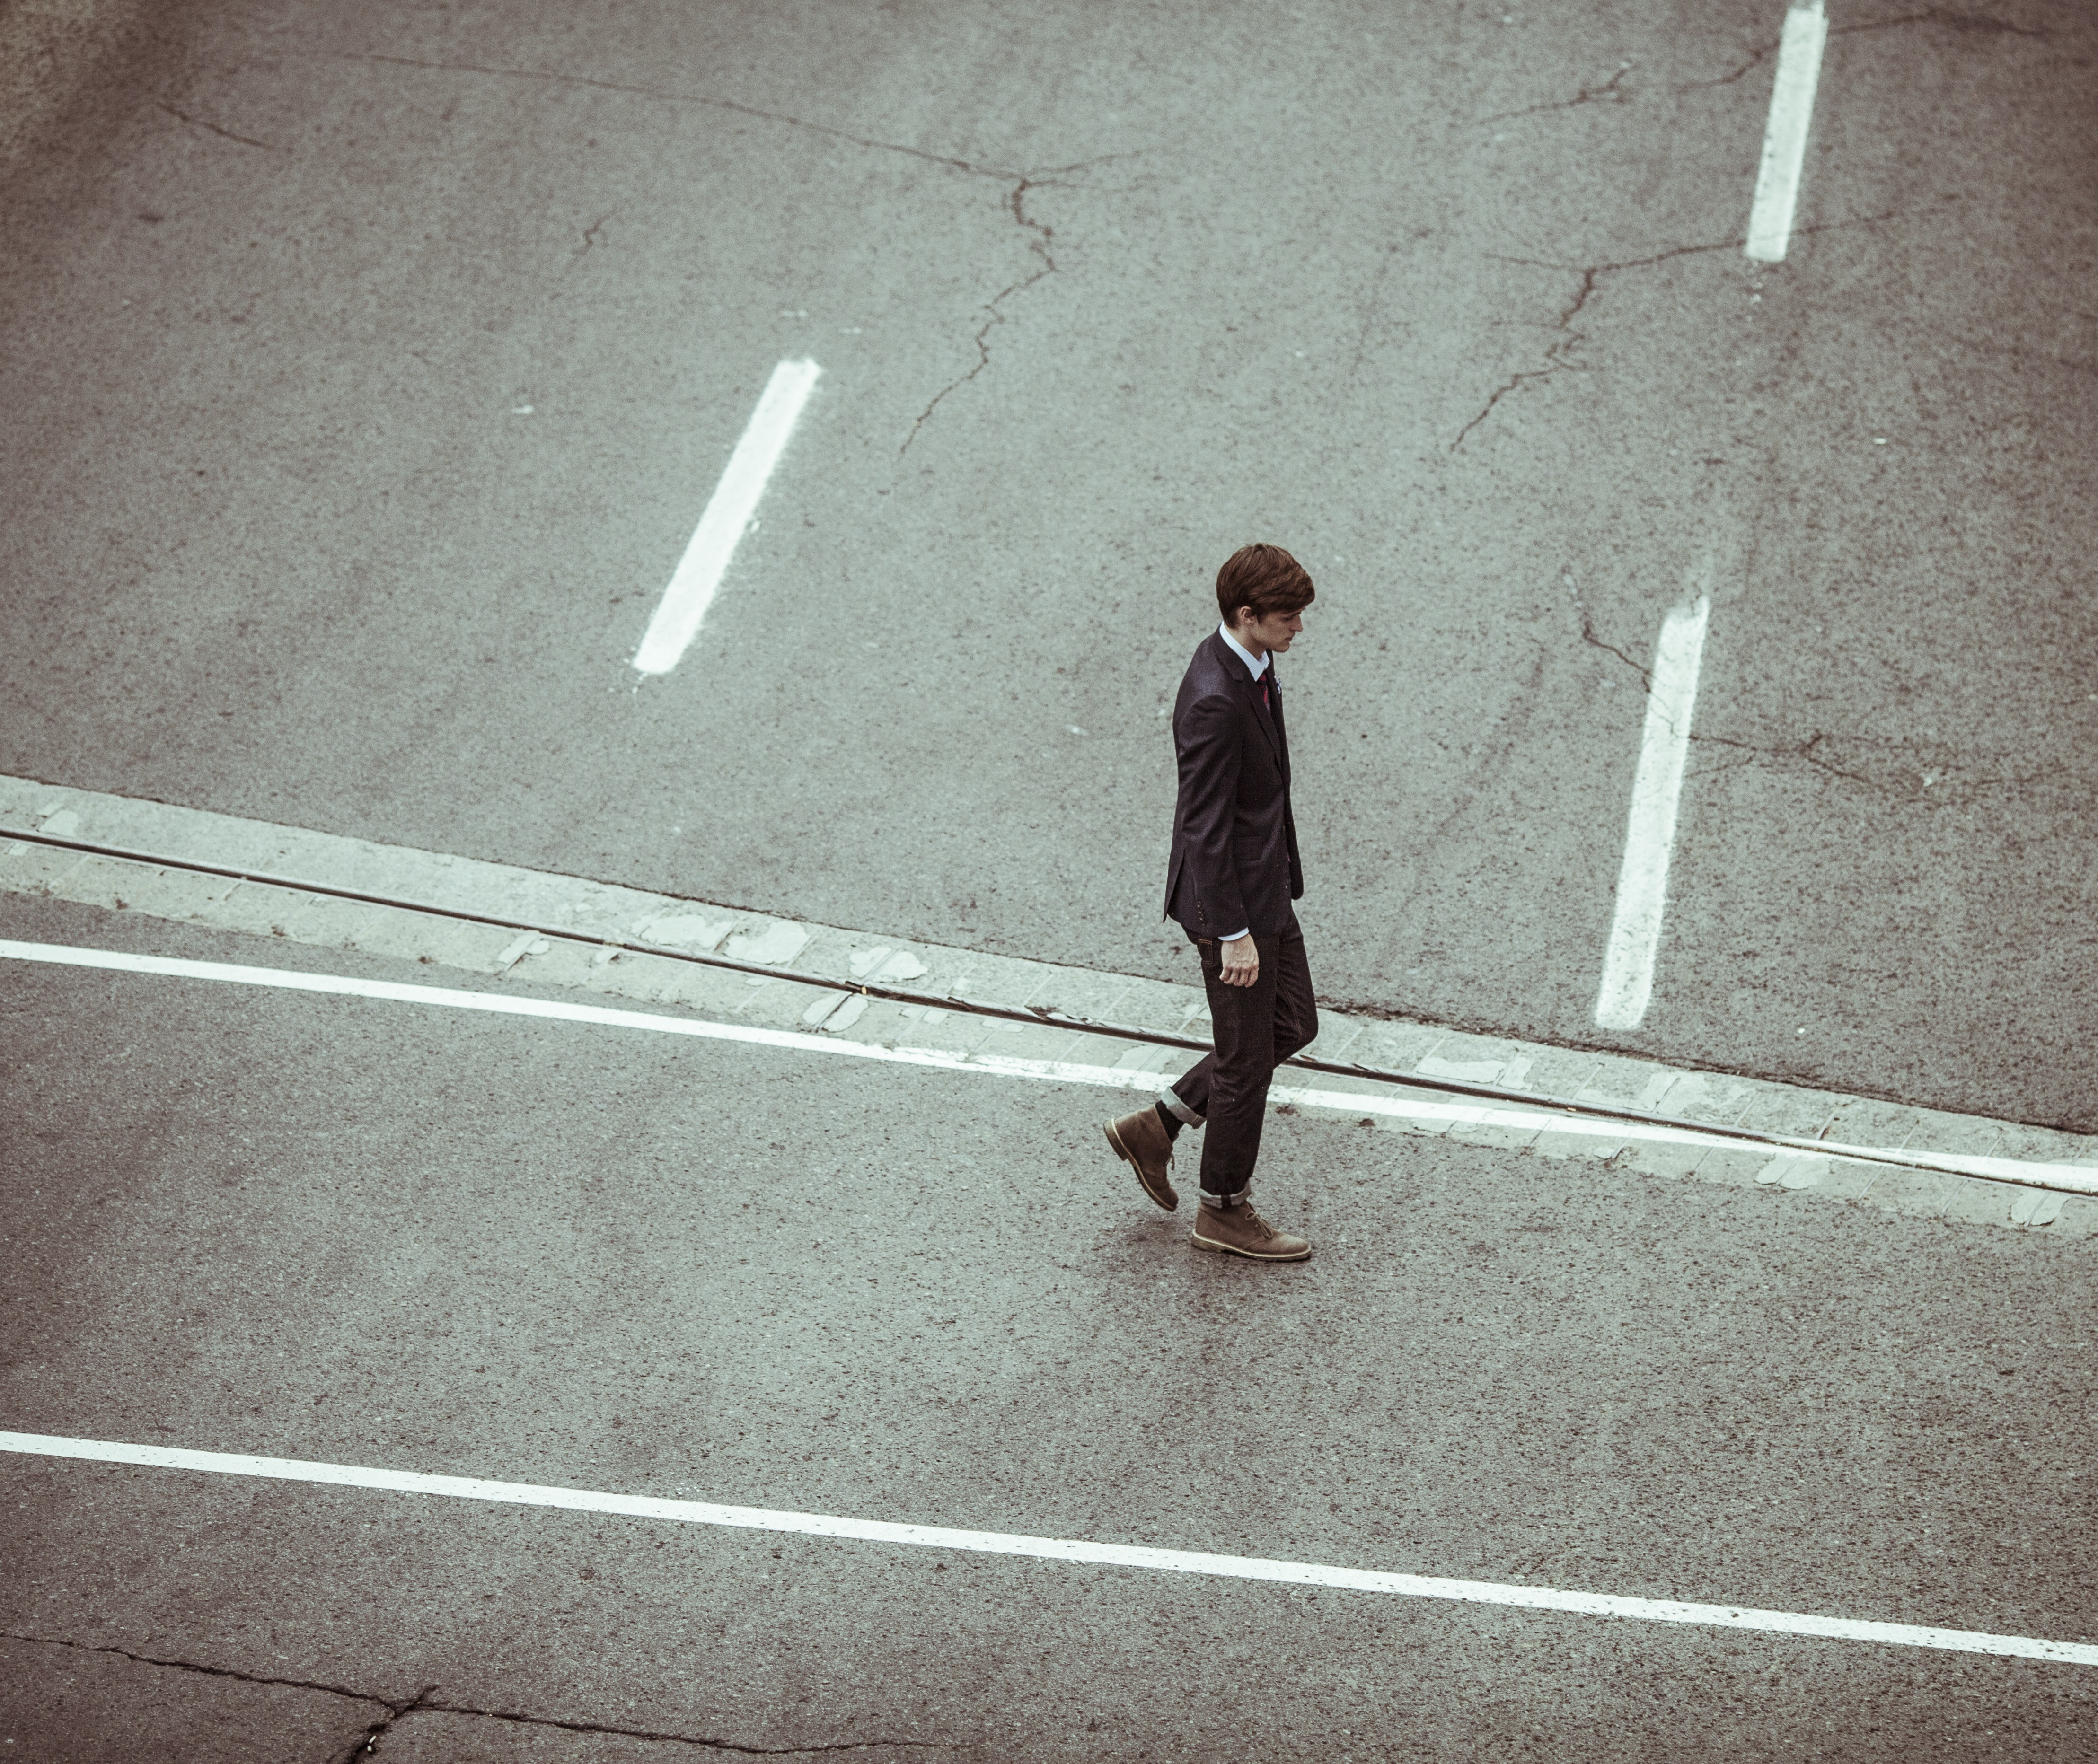 An elegant man in a suit crossing the street